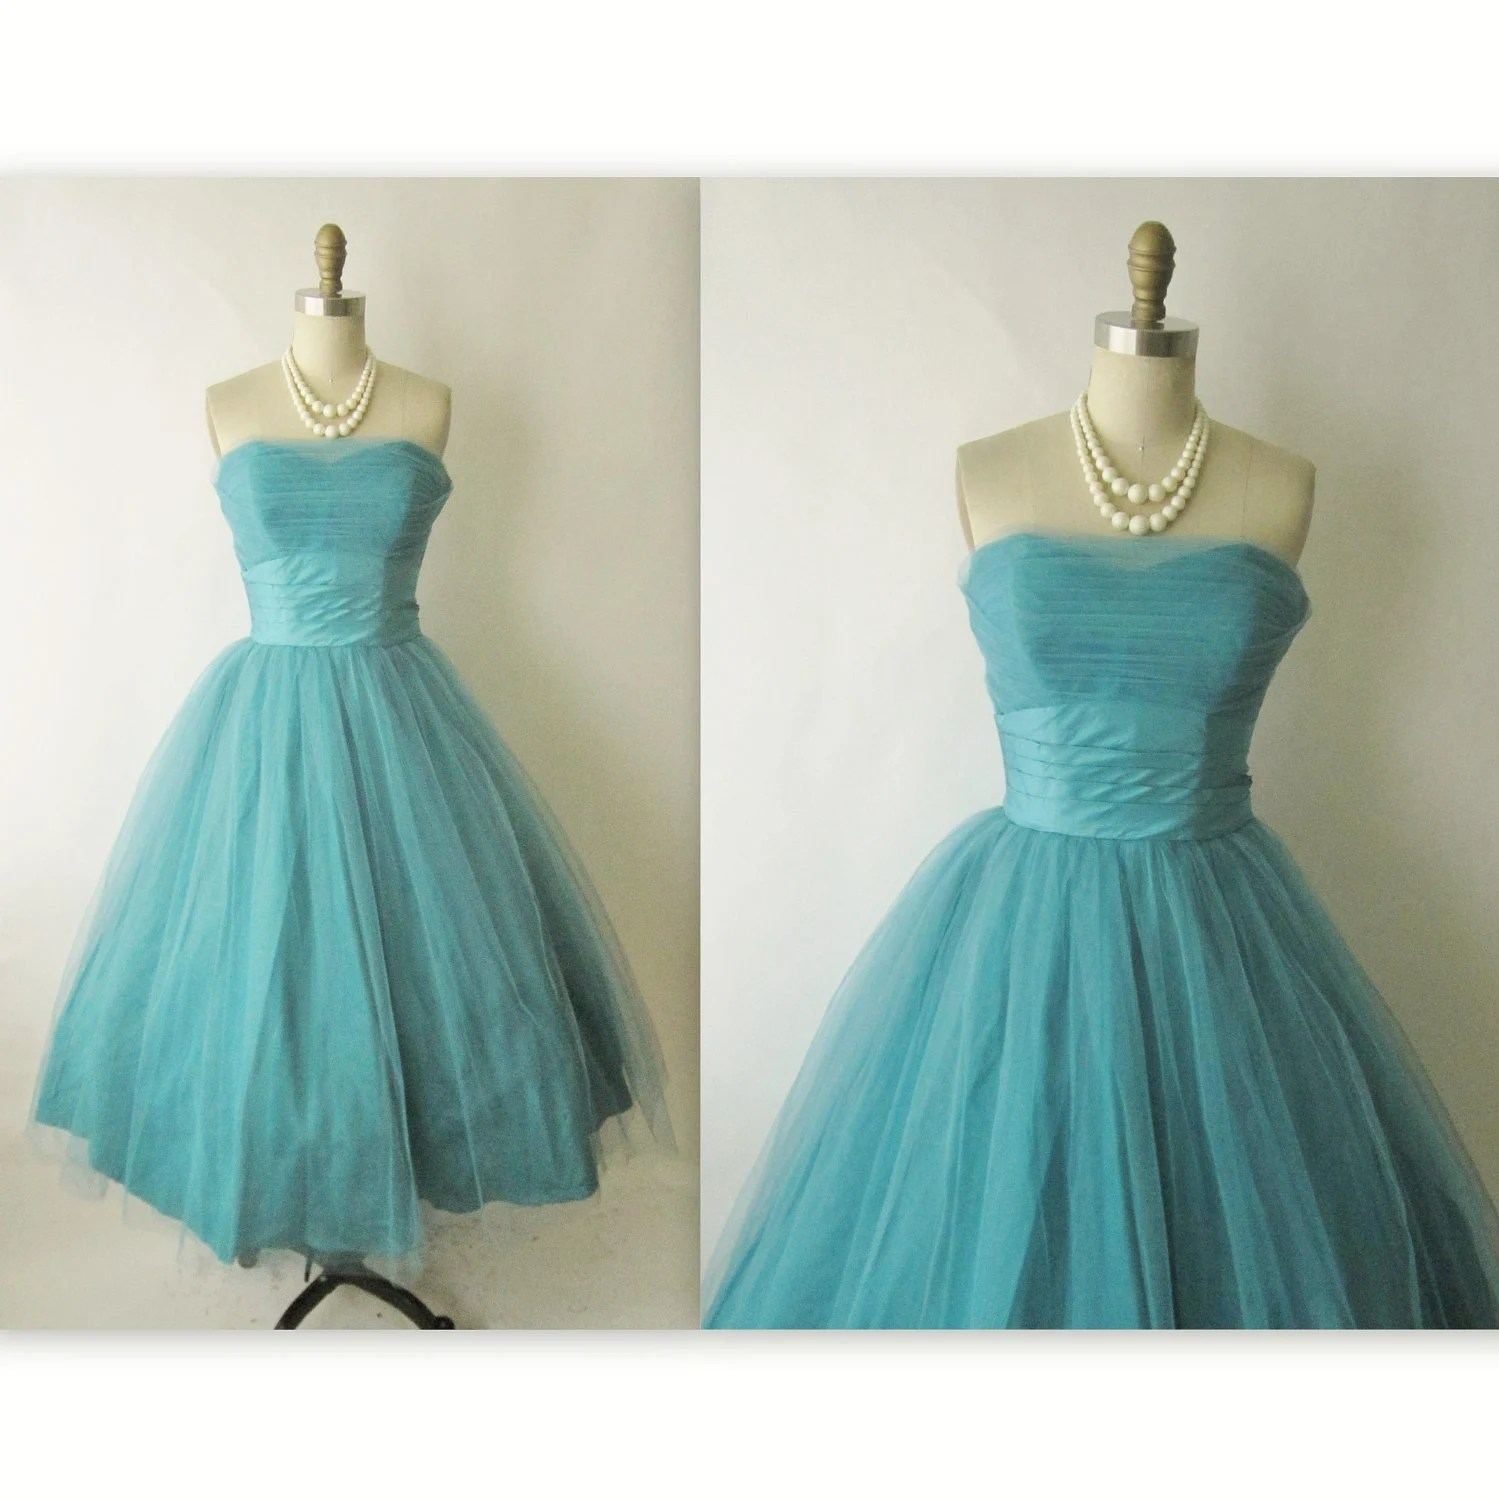 Attractive Etsy Prom Dresses Pattern - All Wedding Dresses ...